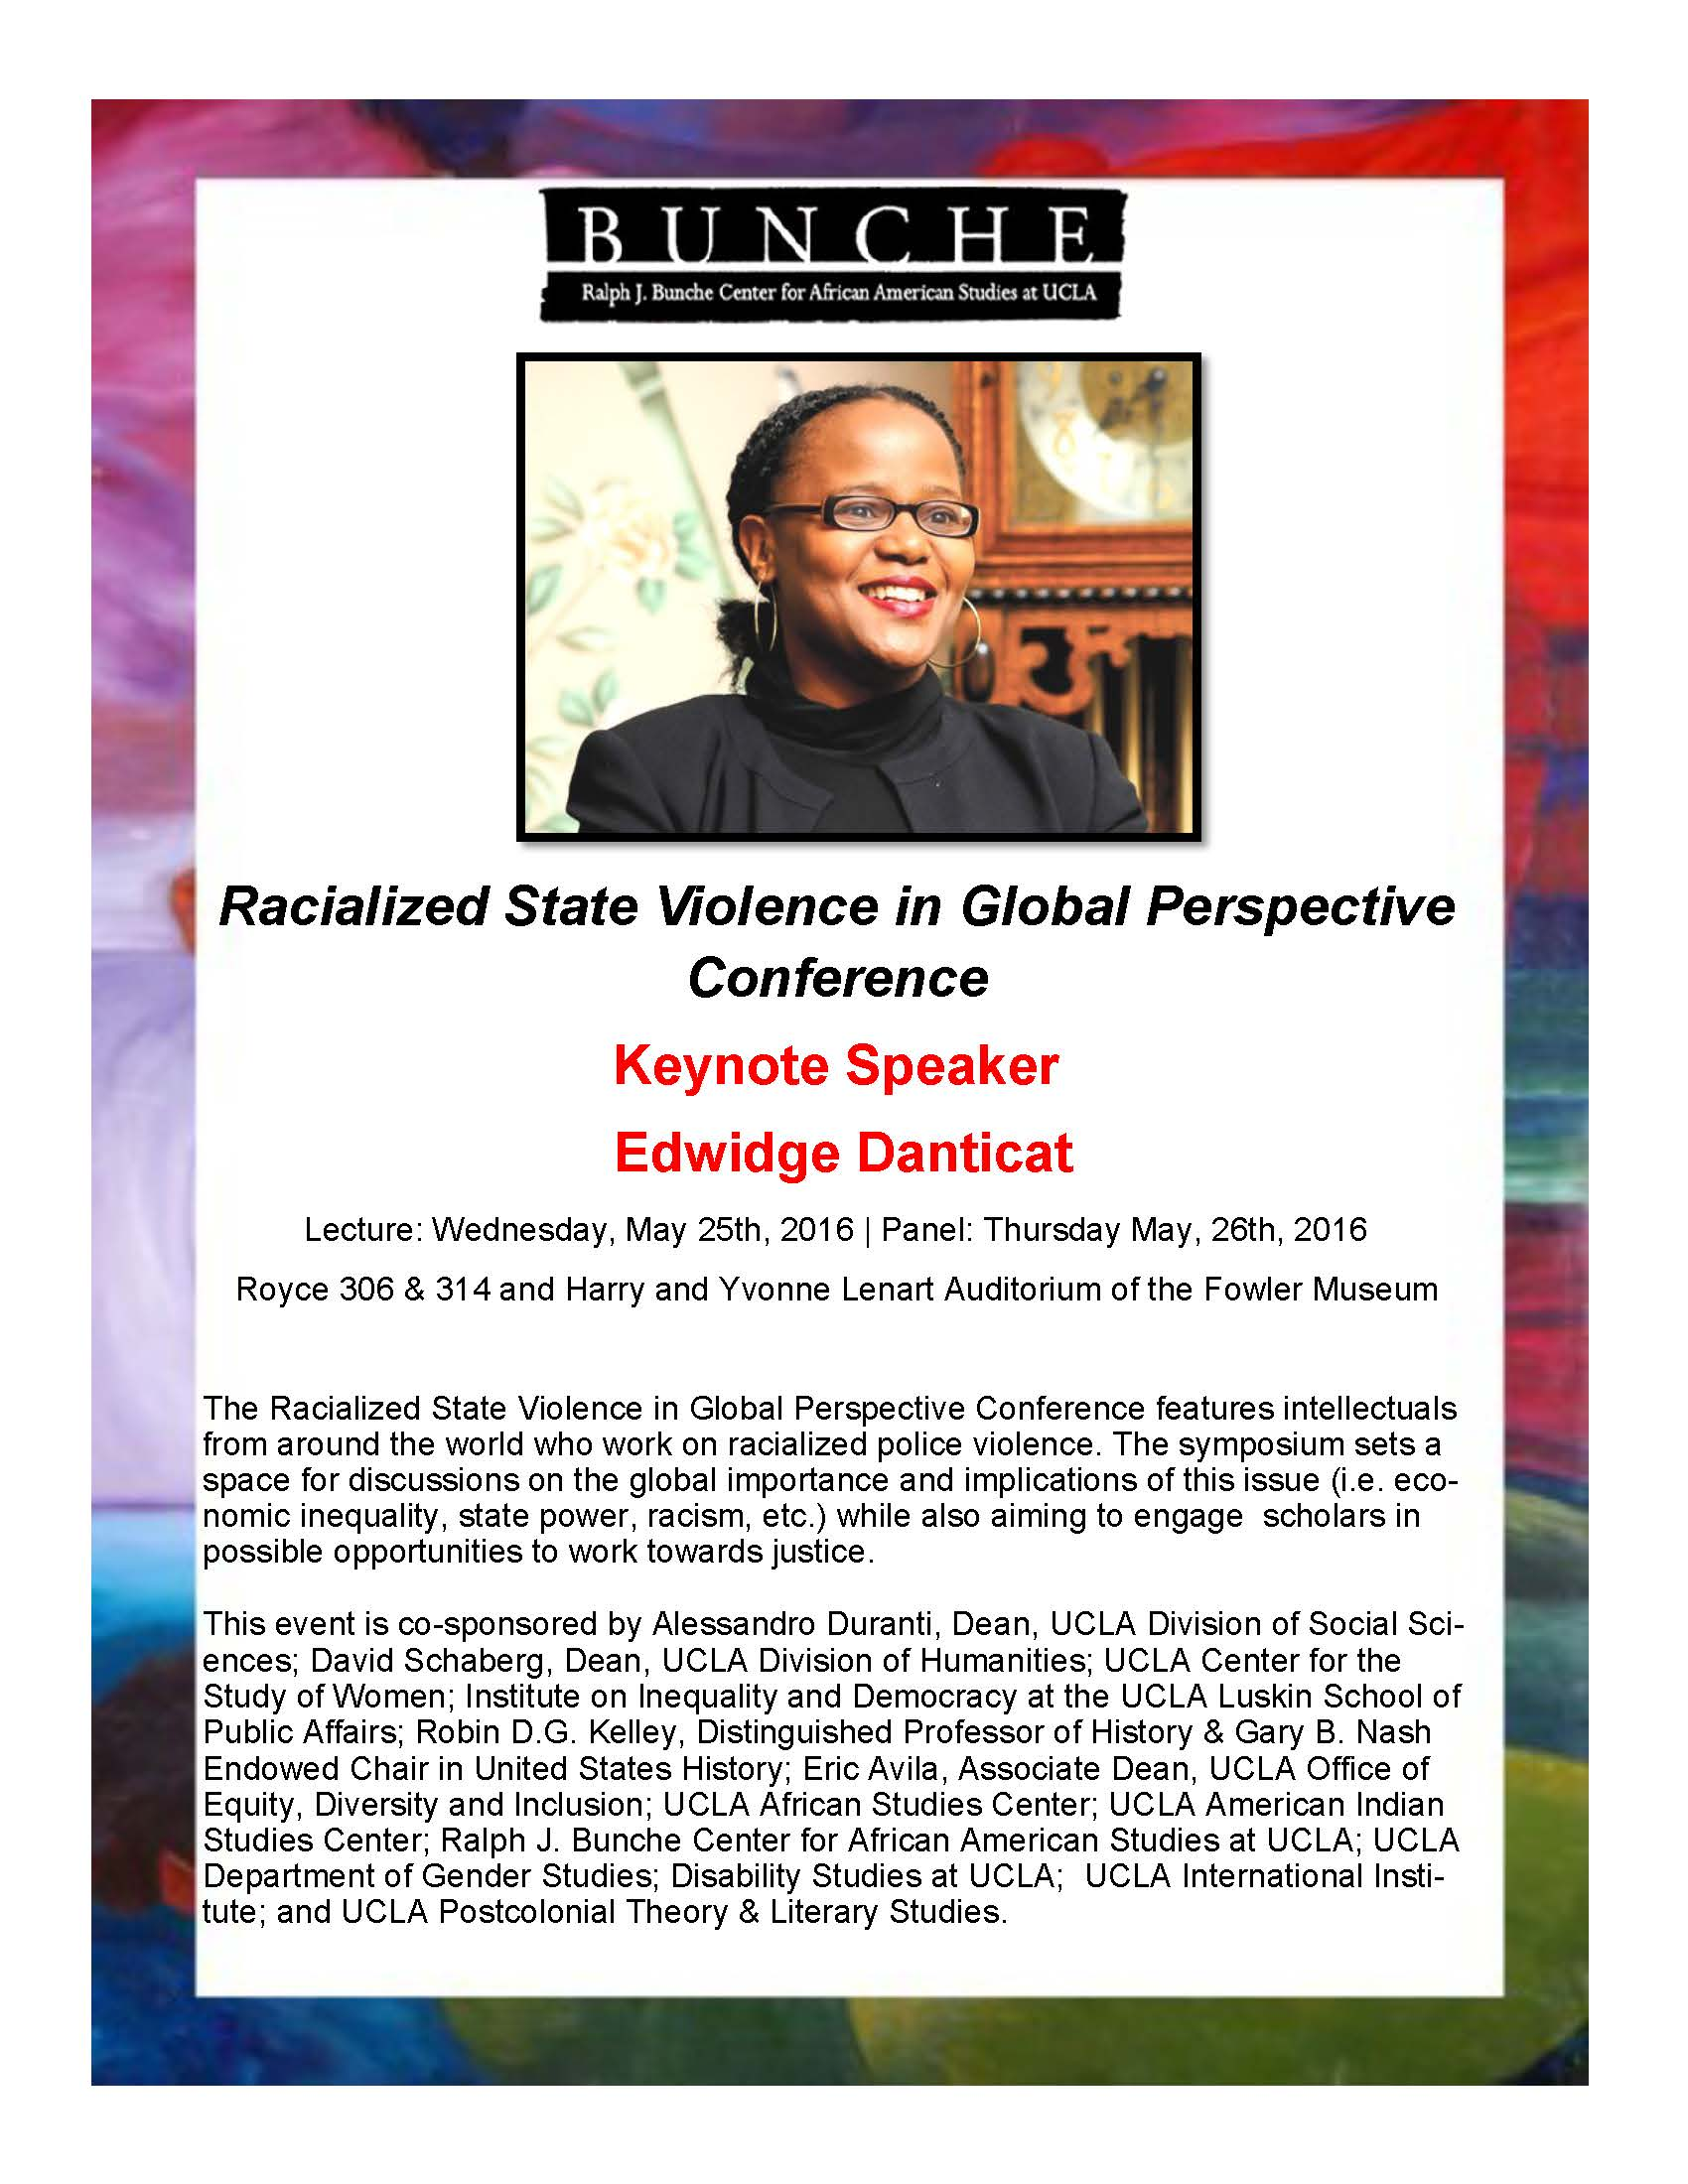 5-25-16 Racialized State Violence Conf